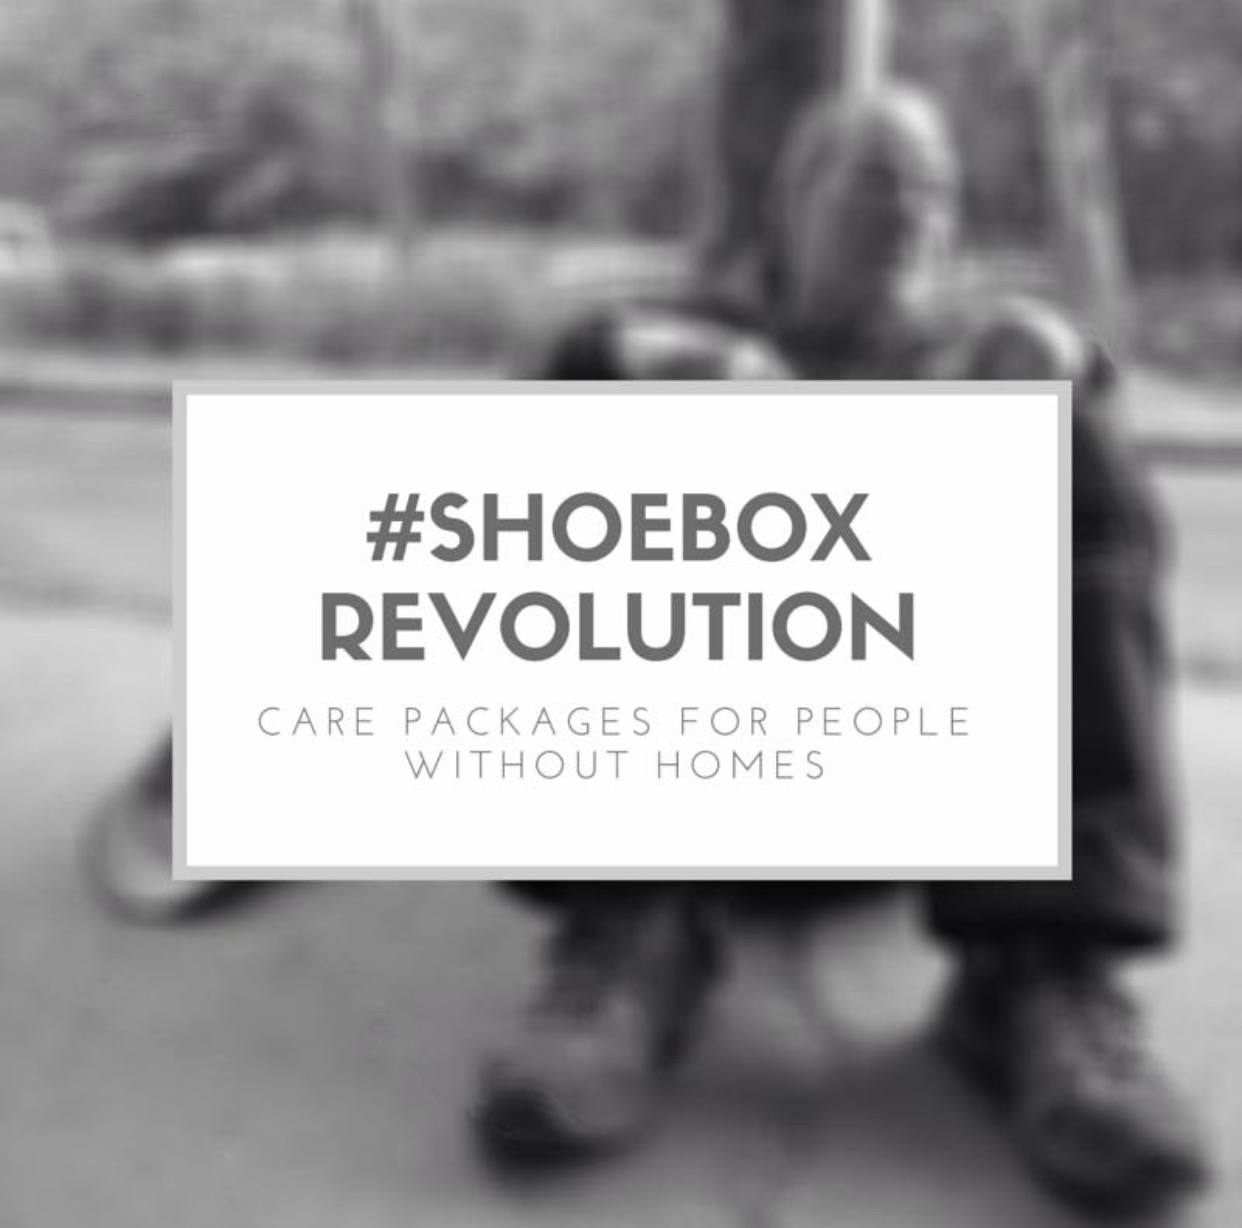 Shoebox Revolution